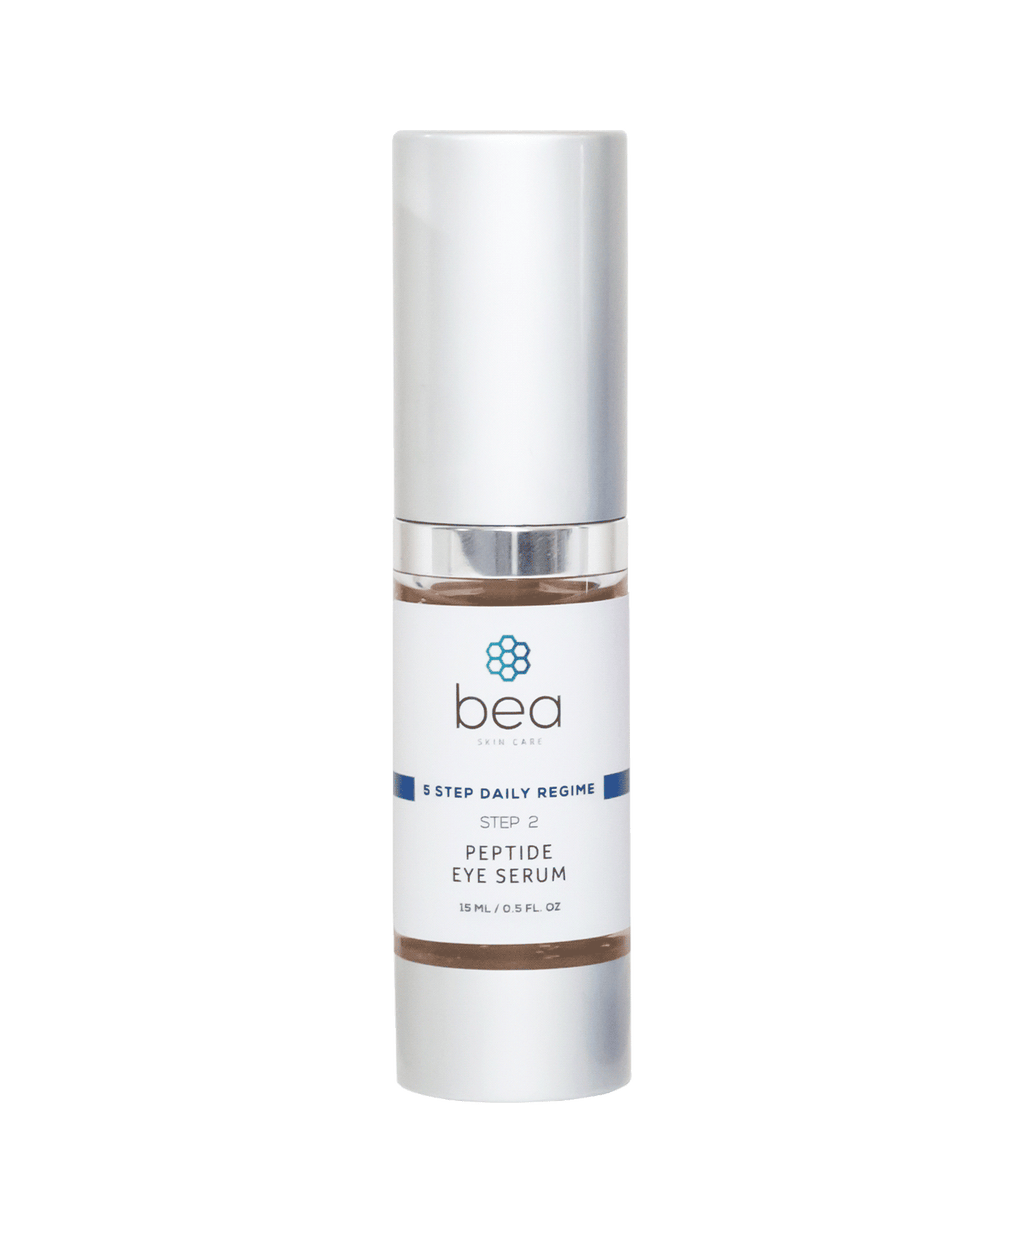 Step 2: Peptide Eye Serum - 15 ml Eye Serum bea Skin Care